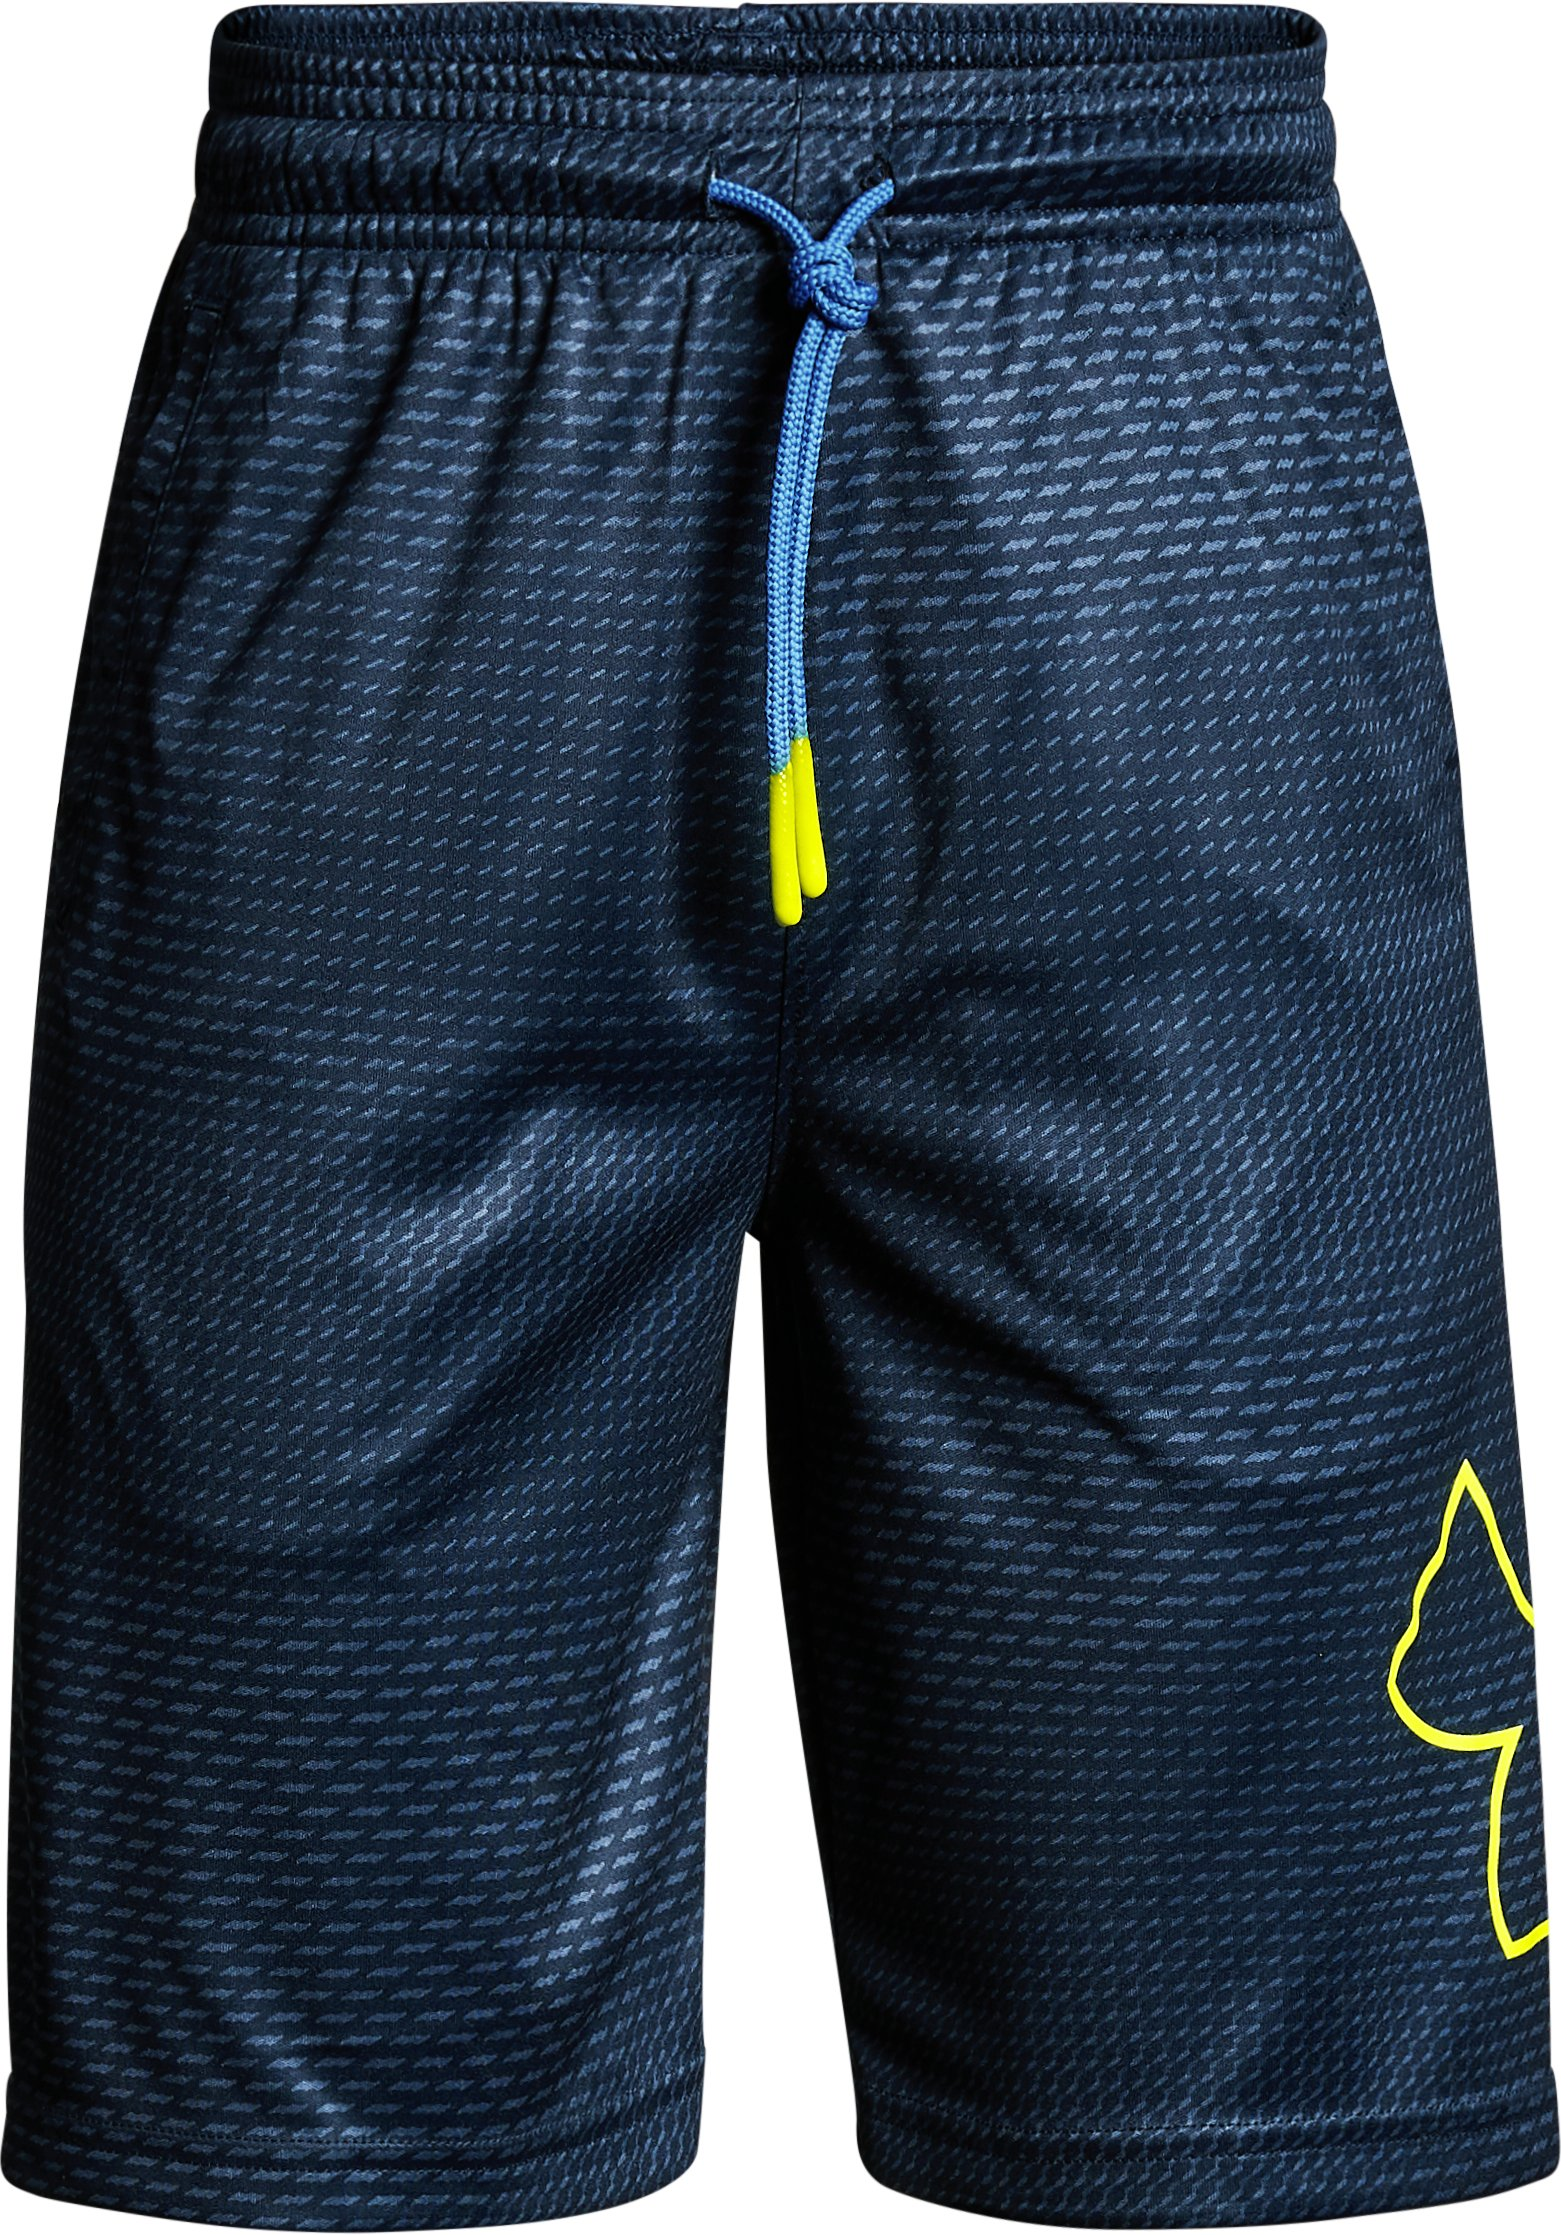 Boys' UA Renegade Printed Shorts, Academy,